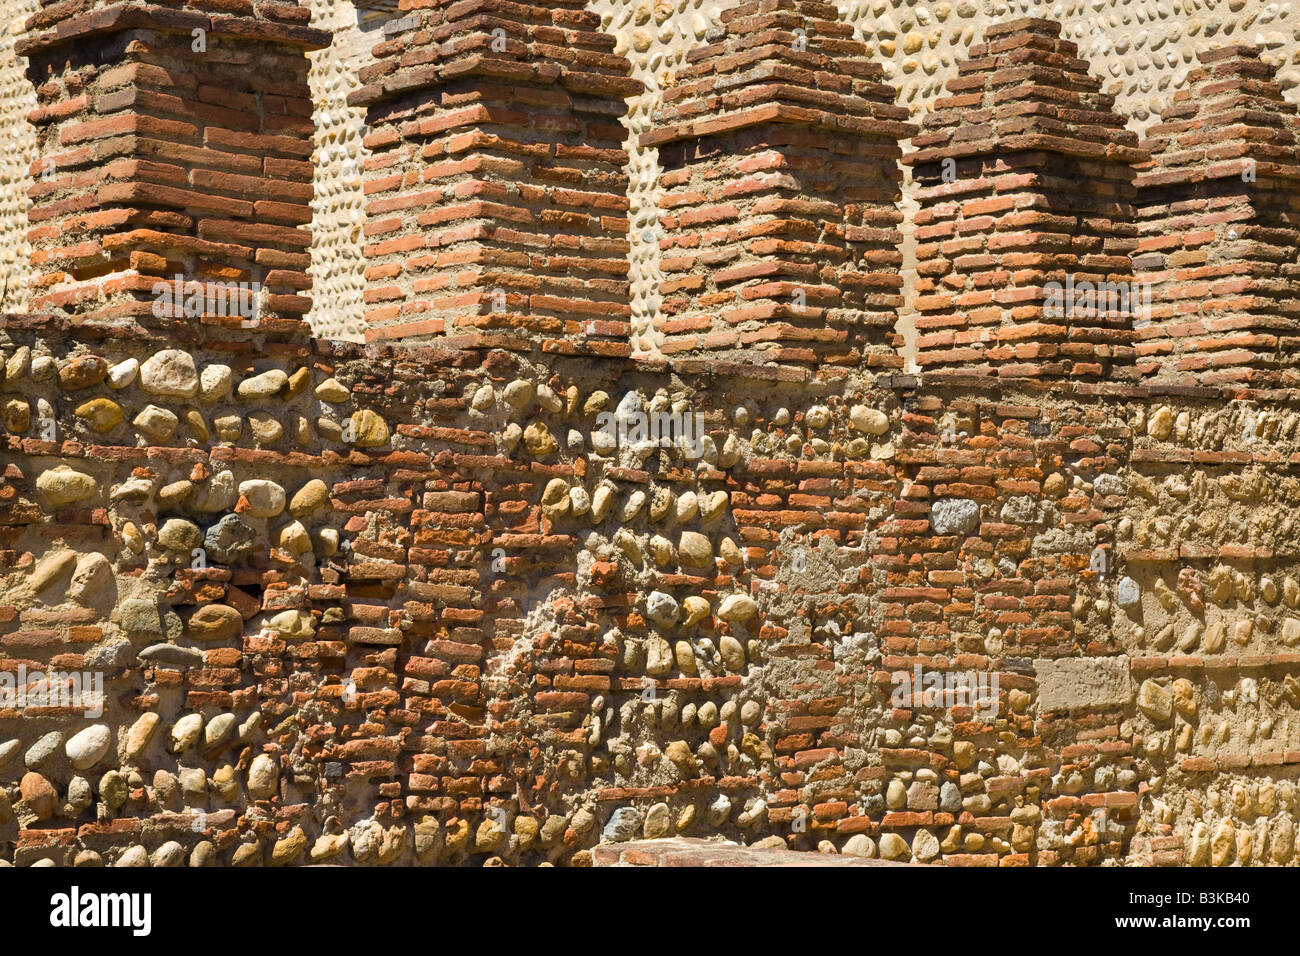 Brickwork inside the Palace of the Kings of Majorca at Perpignan in southern France - Stock Image